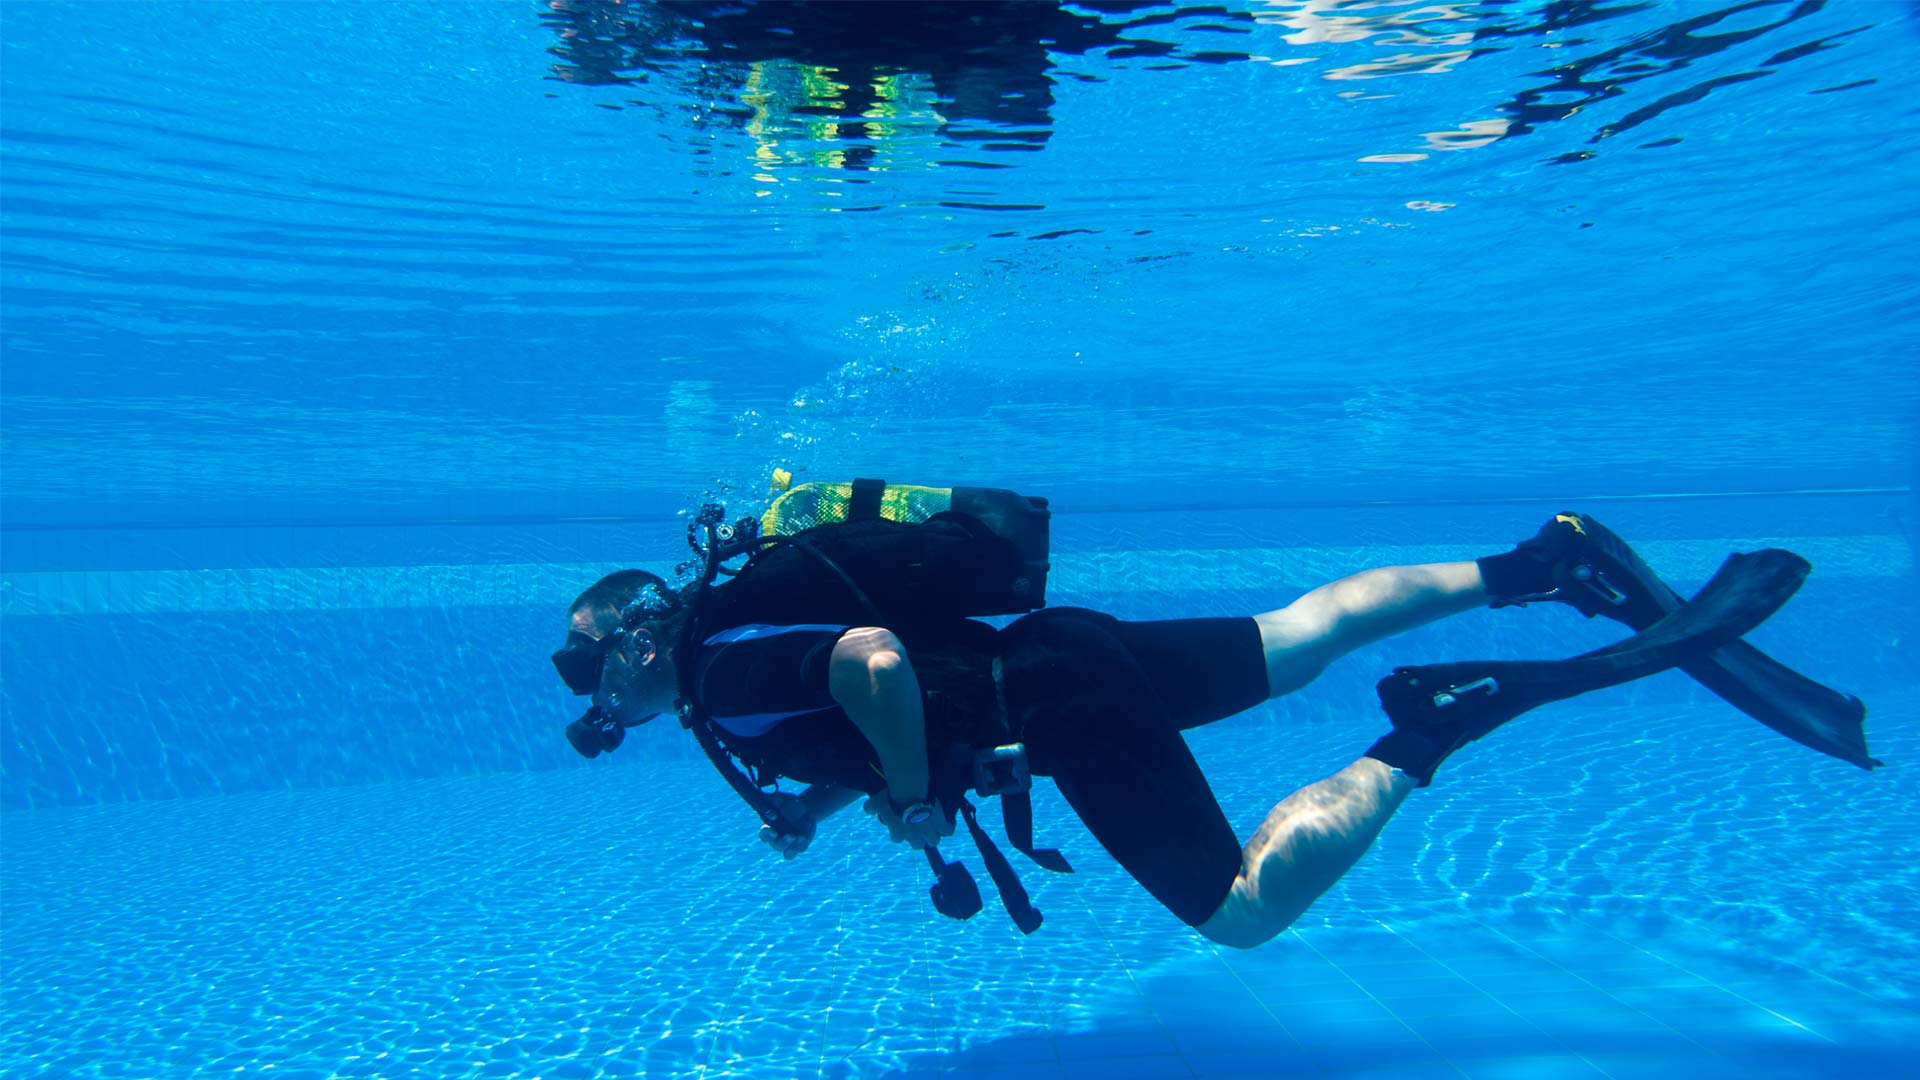 Swimming pool discover scuba diving